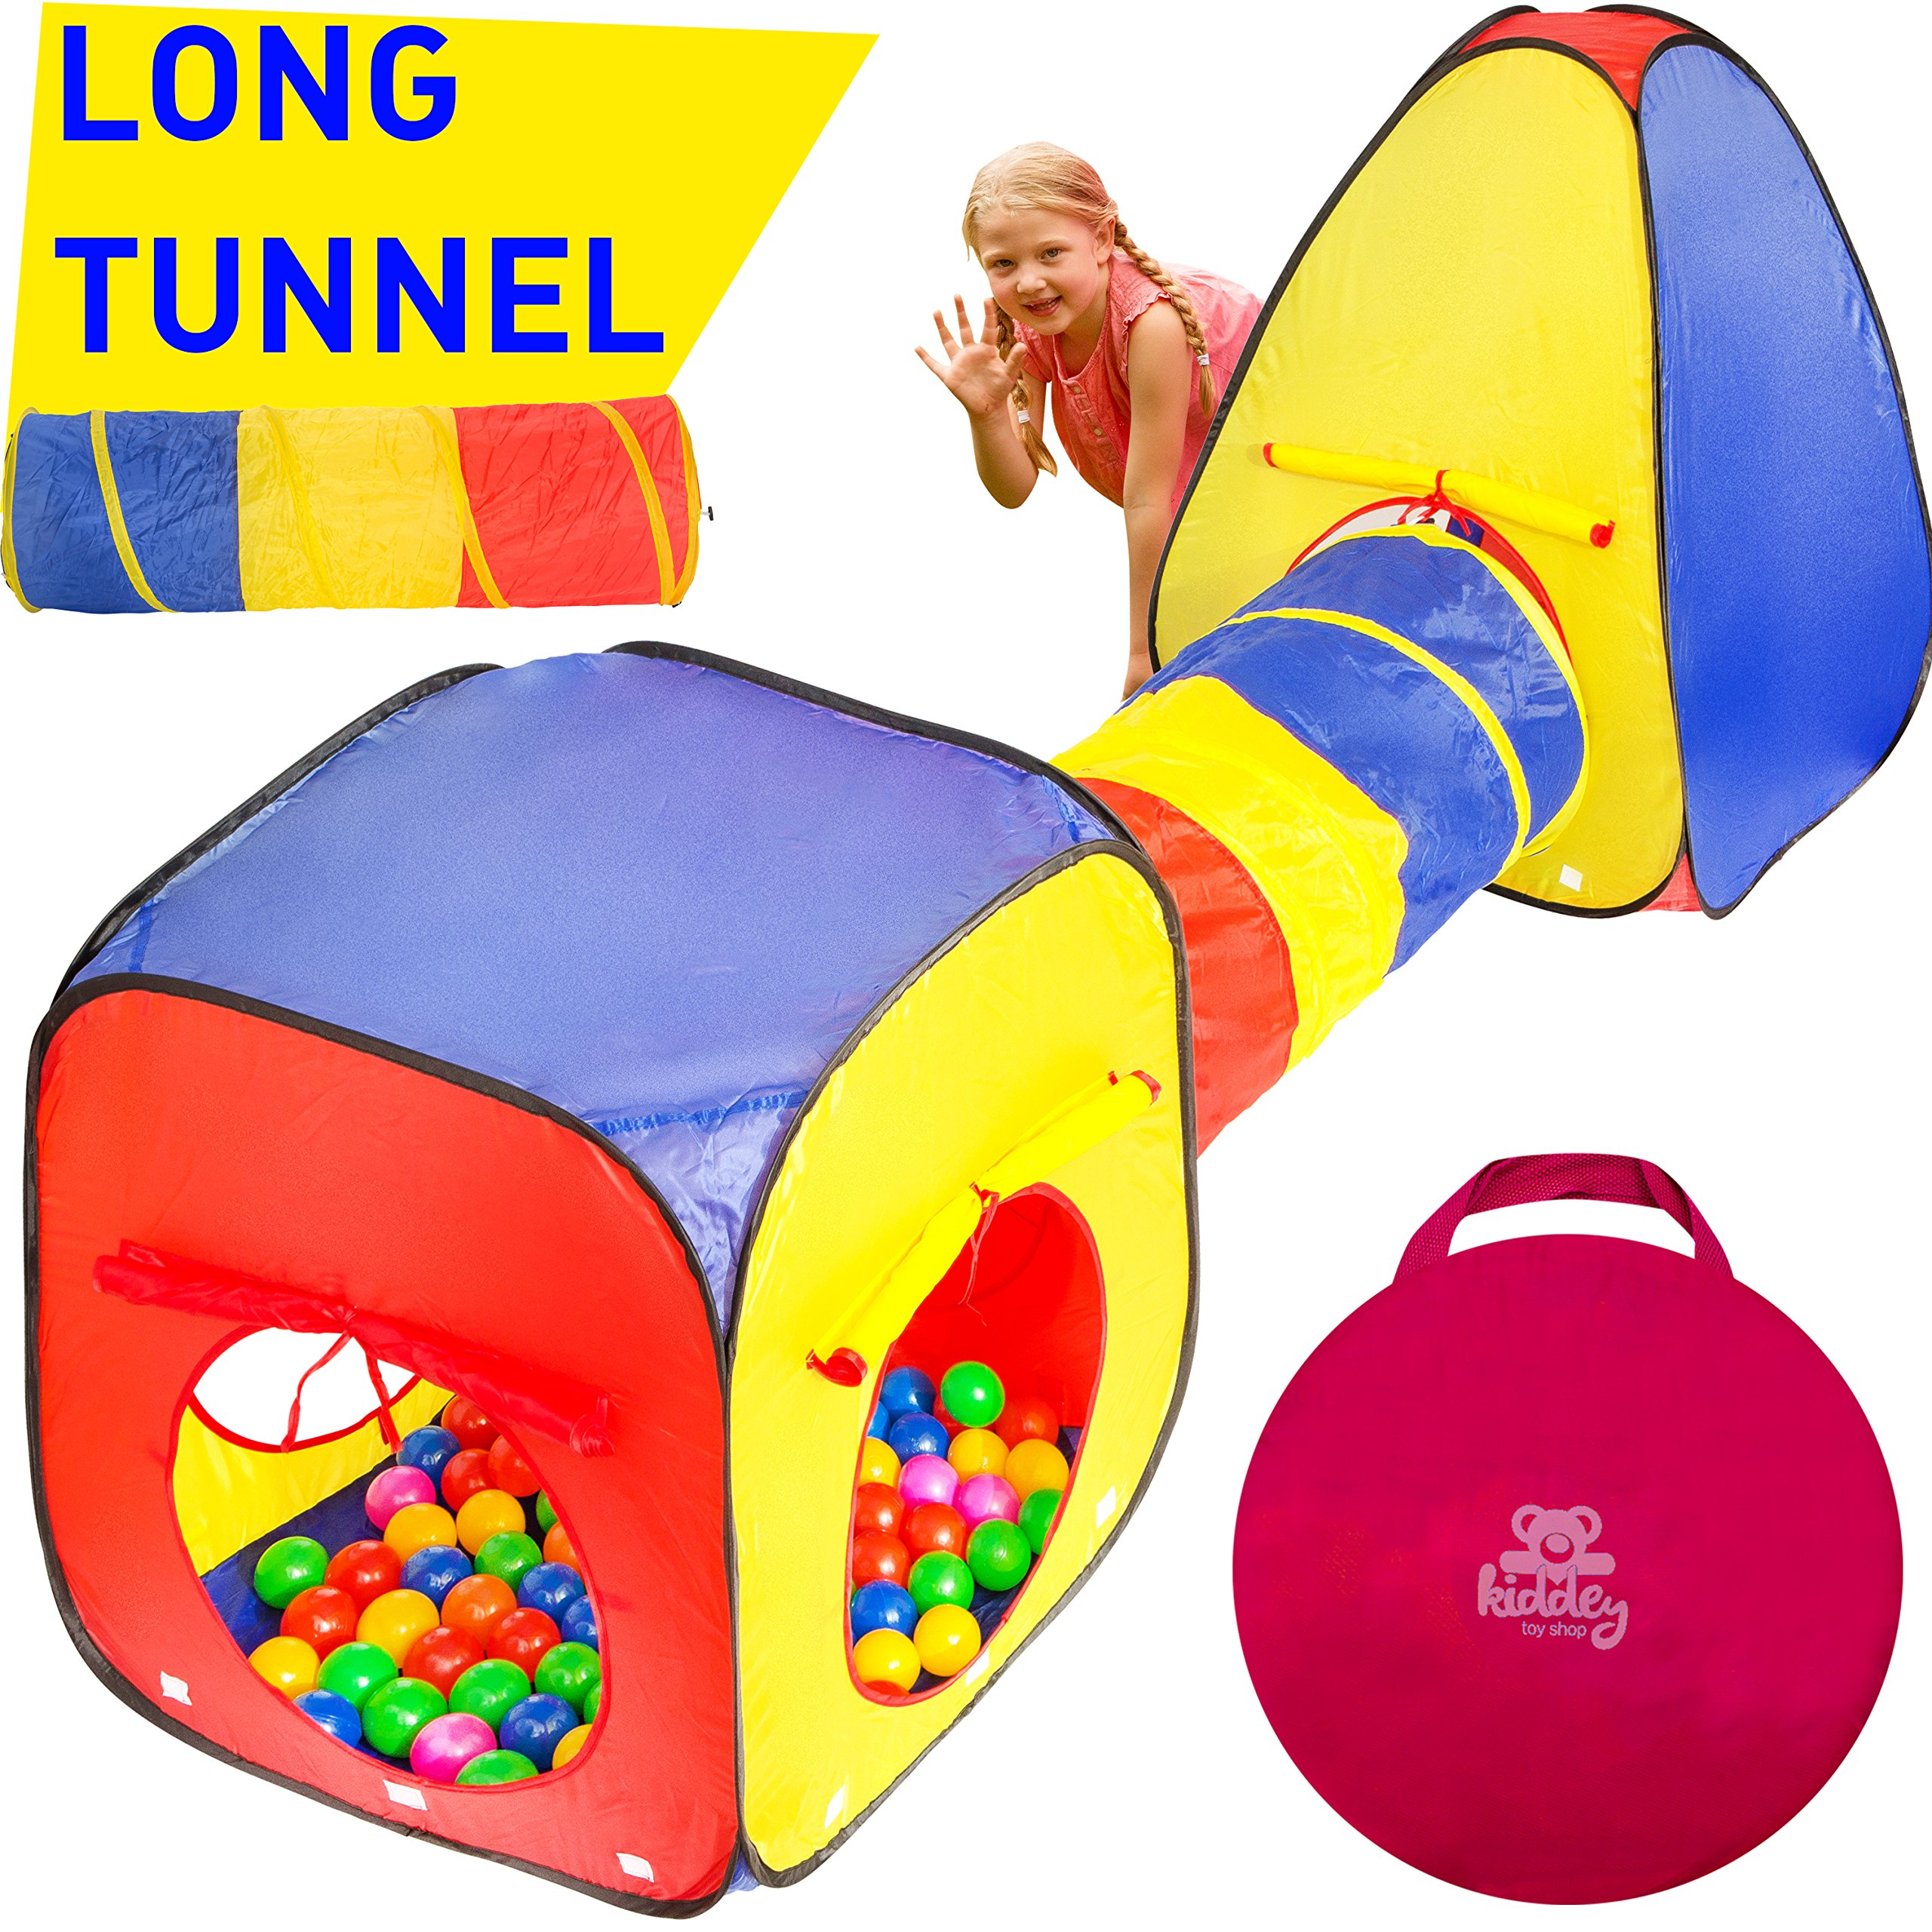 Kiddey 3pc Kids Play Tent Crawl Tunnel and Ball Pit Set u2013 Durable Pop Up Playhouse  sc 1 st  Amazon.com & Best Rated in Kidsu0027 Play Tents u0026 Tunnels u0026 Helpful Customer ...